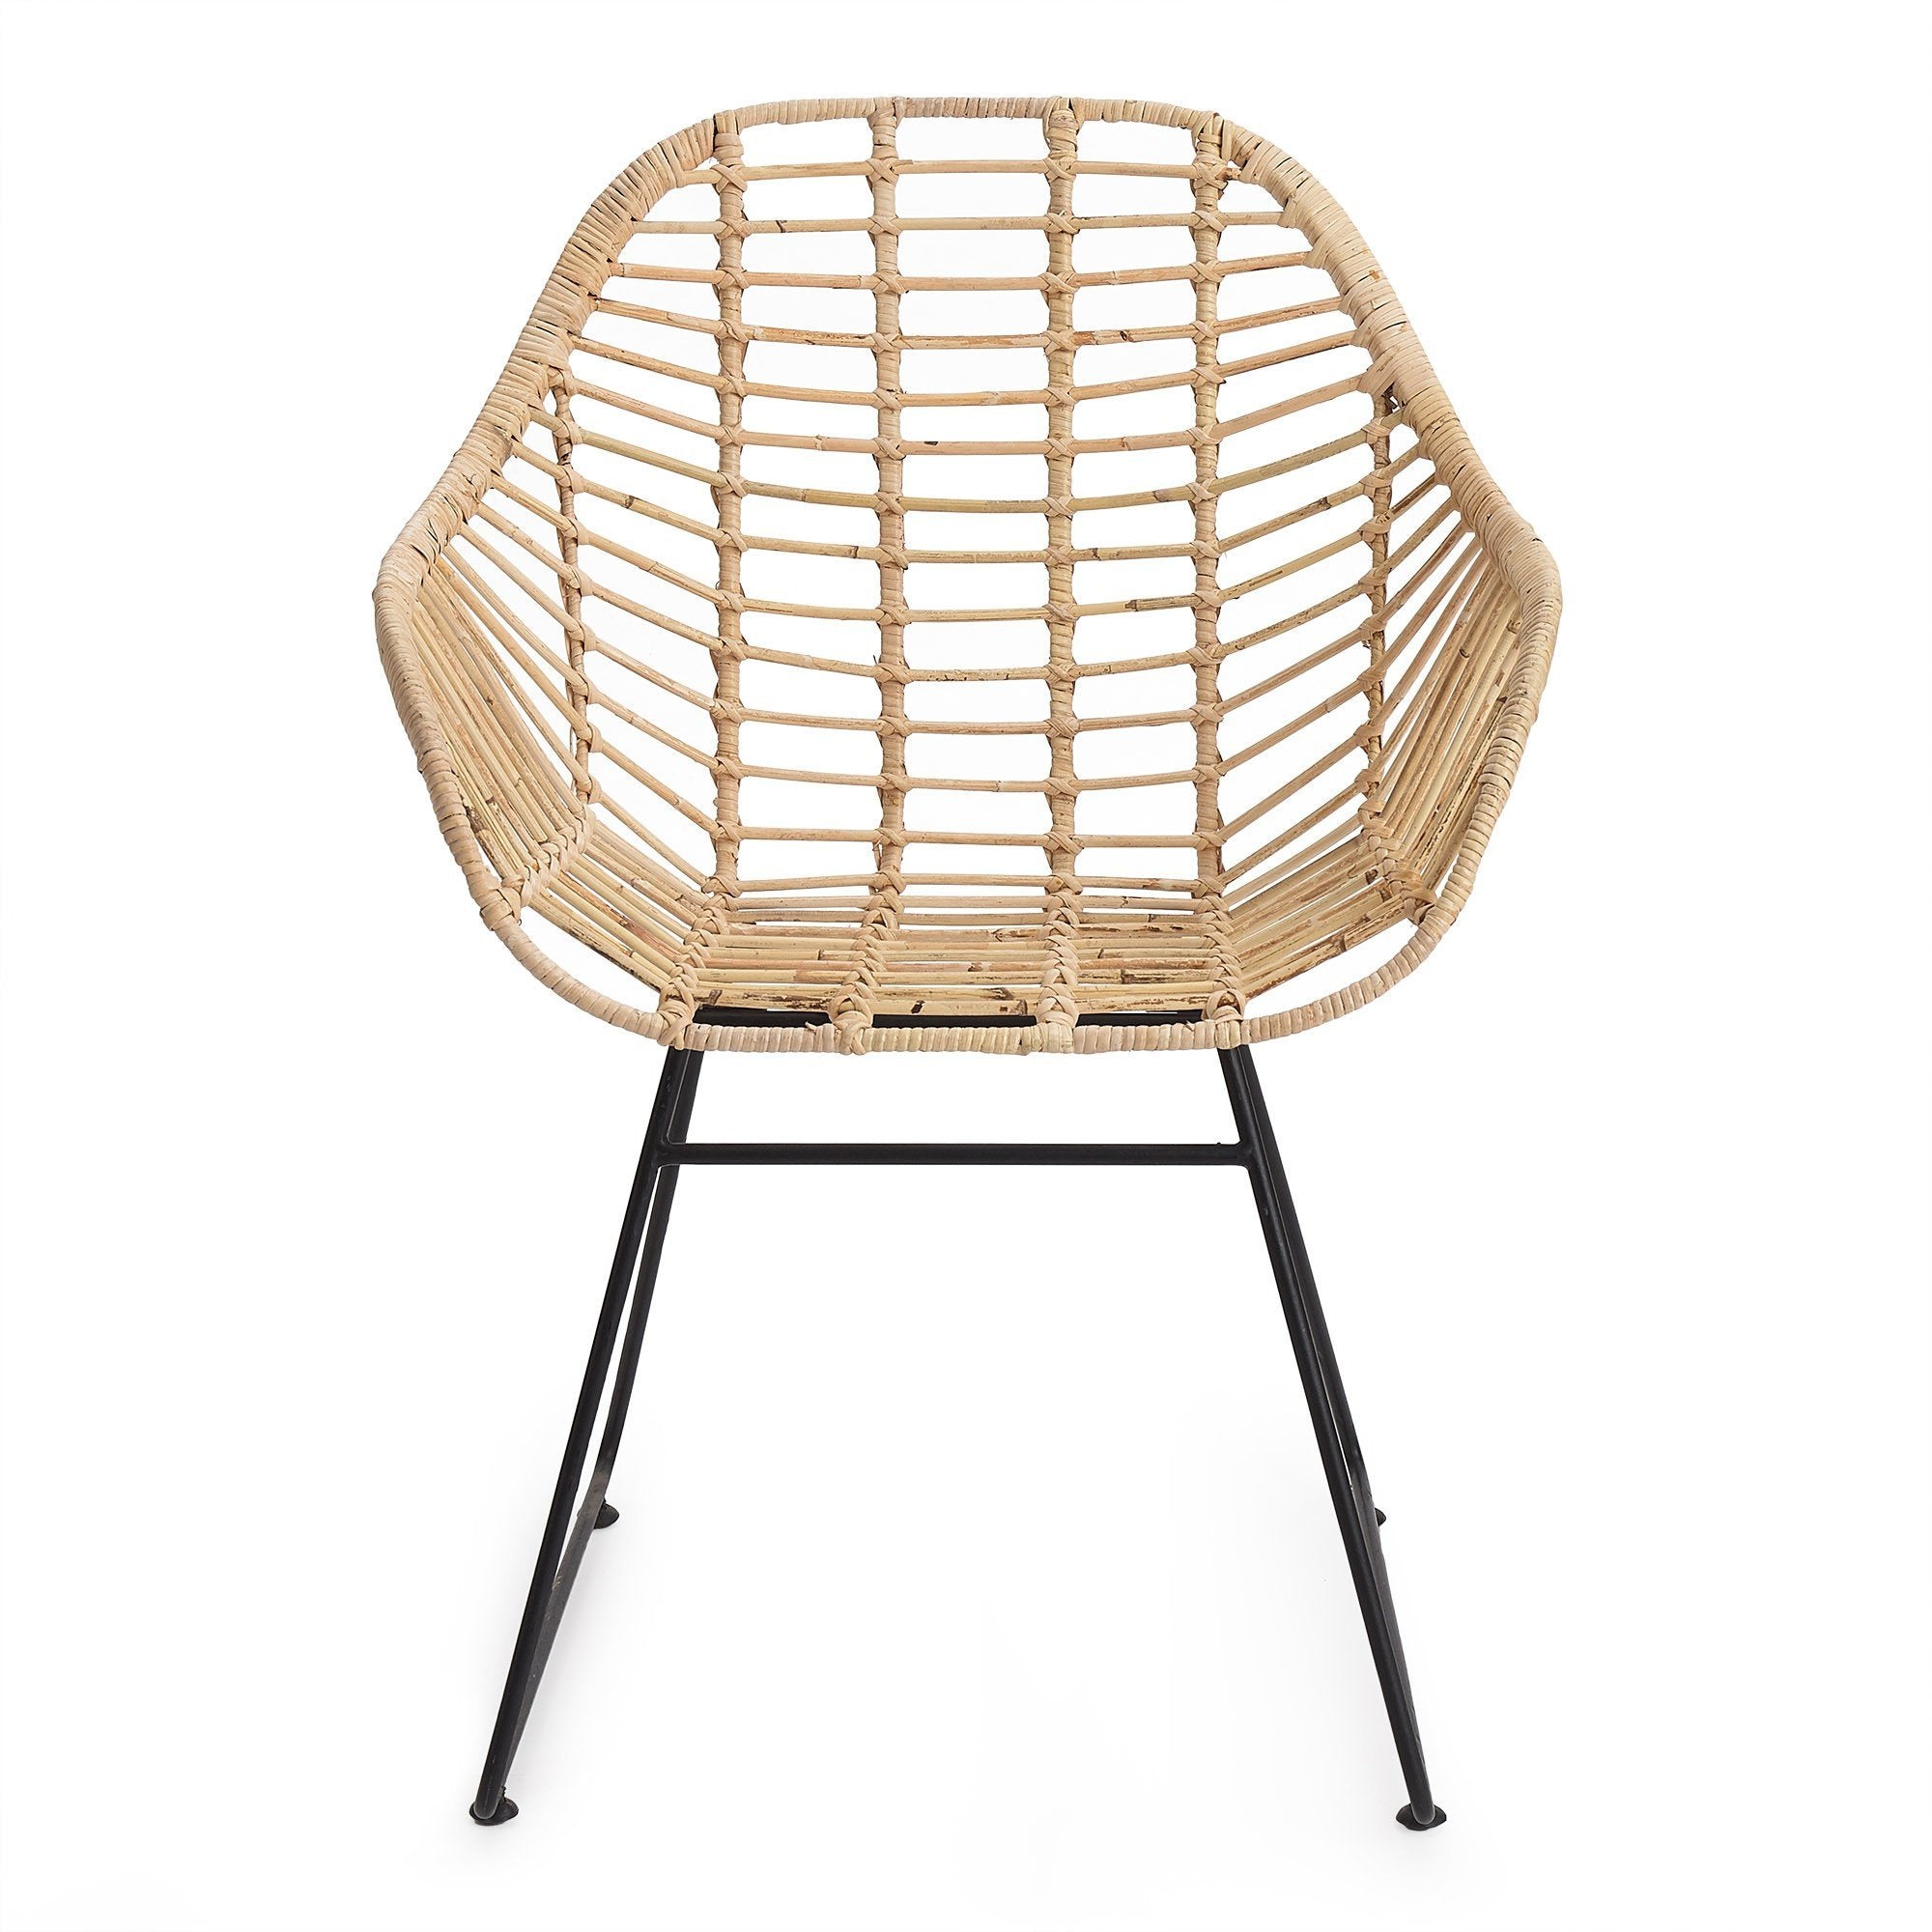 Palu Rattan Chair natural, 100% rattan